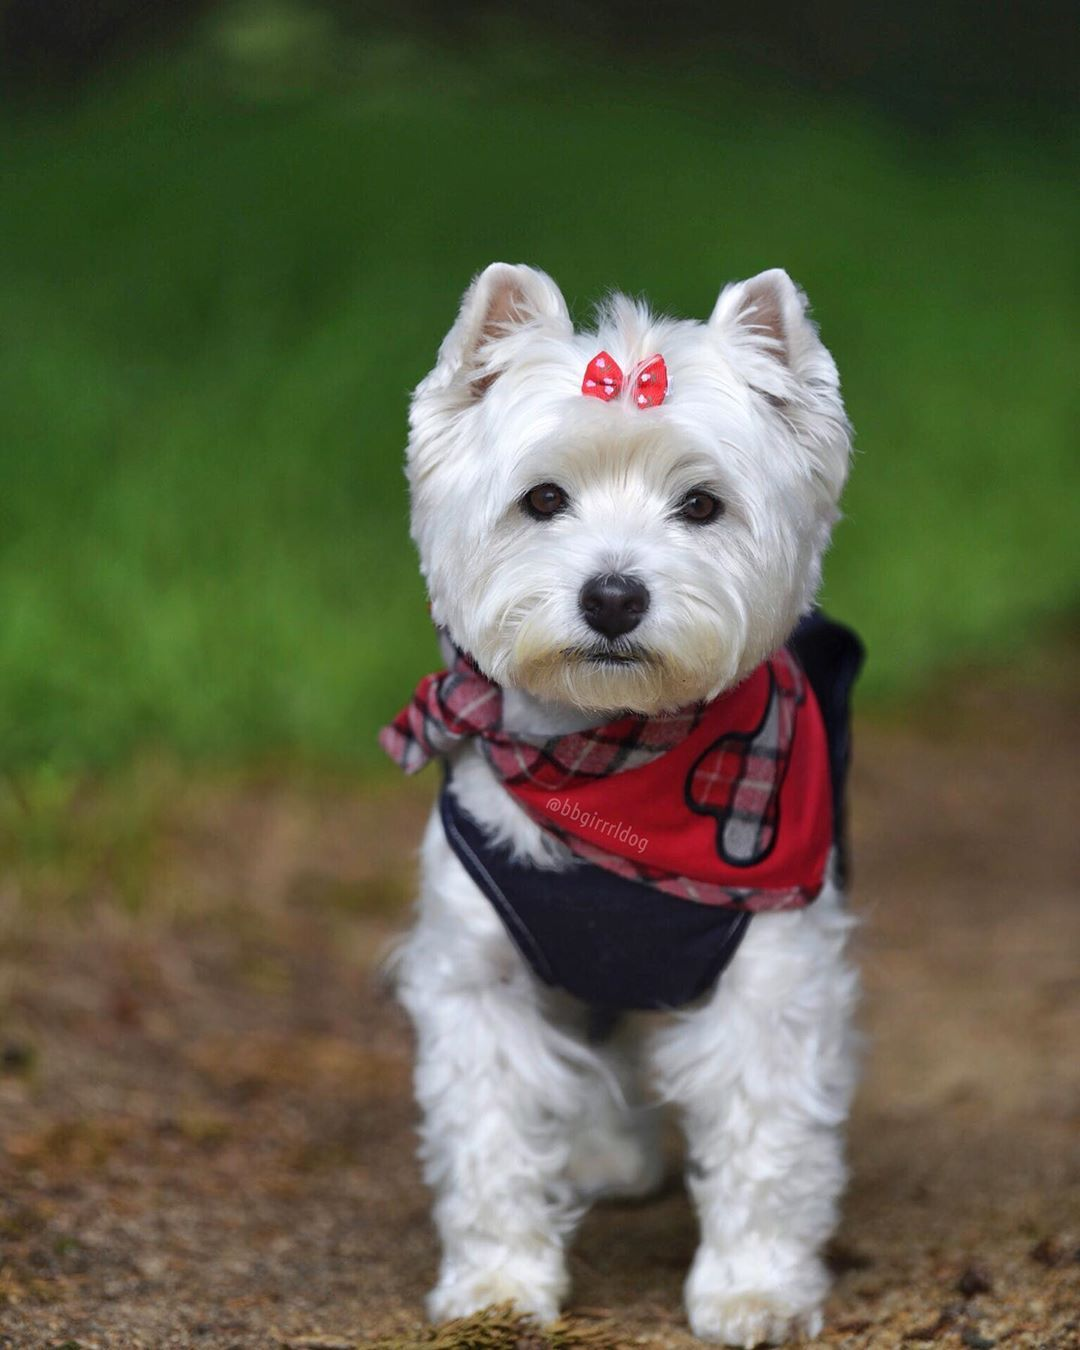 Pin By Gyorgyi Fodorne On Dogs In 2020 Westie Puppies Cute Puppies Canine Companions